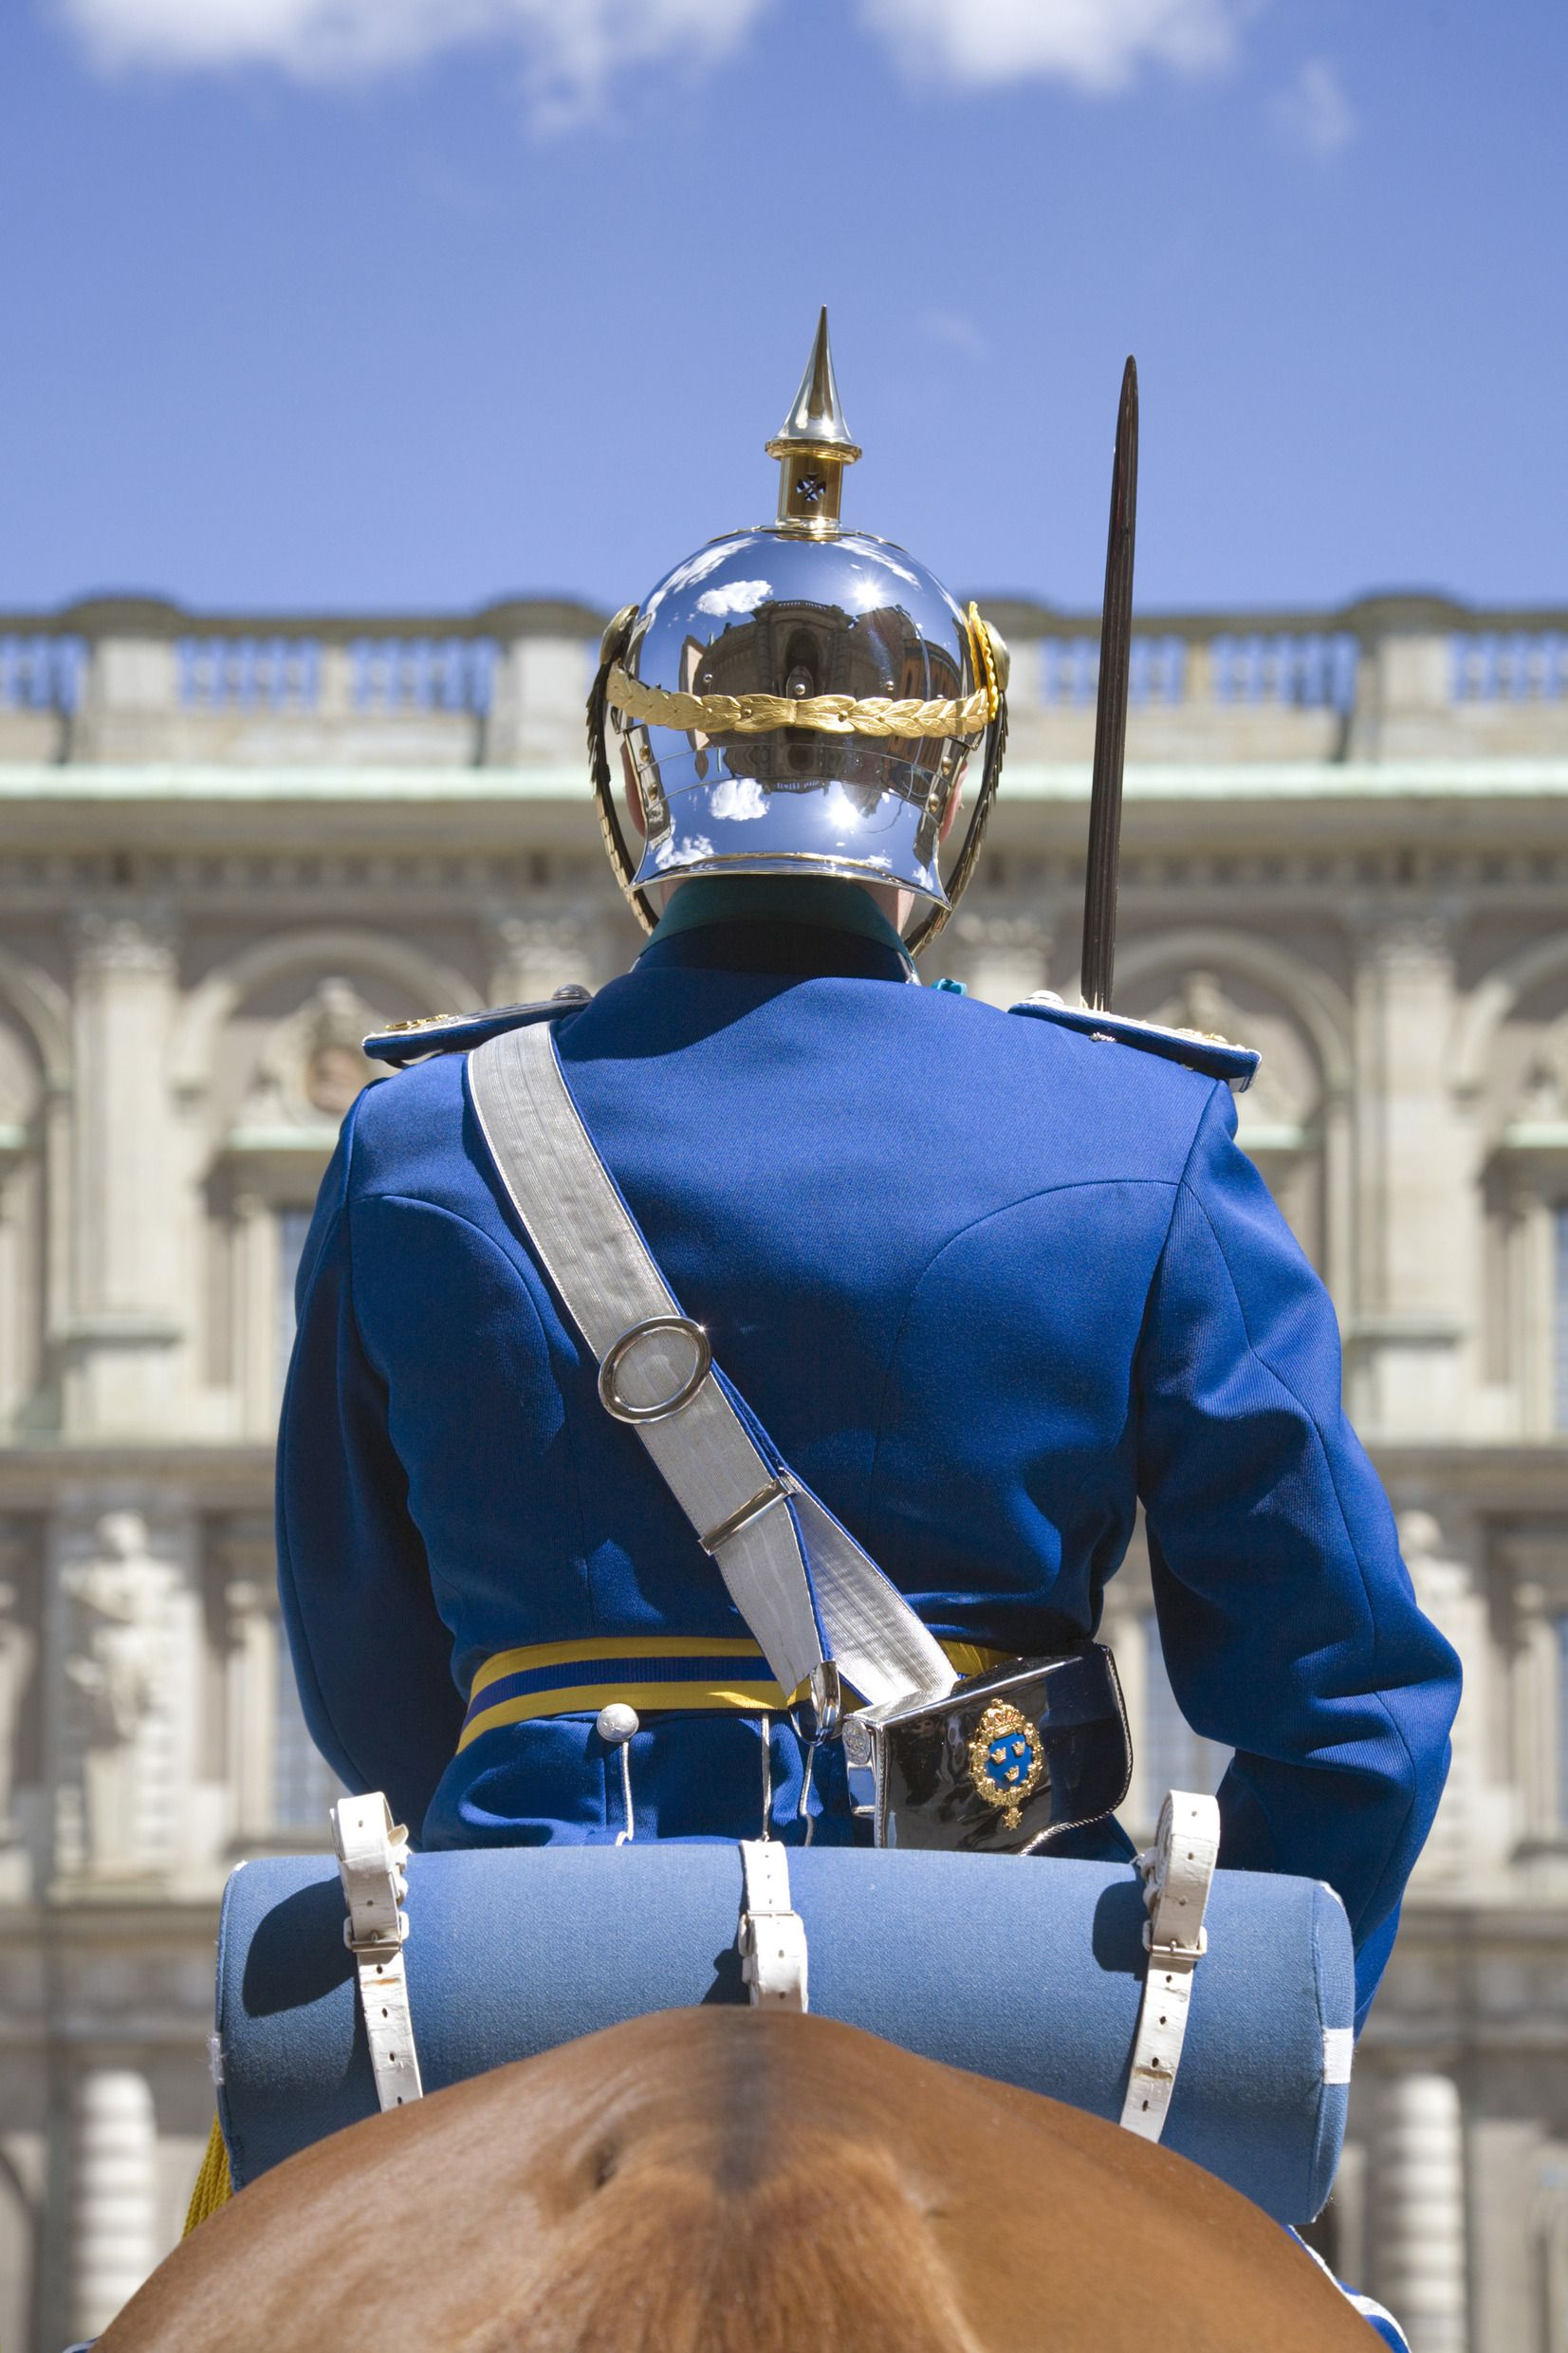 The Royal Palace in Stockholm is guarded 24/7 all year around by guards. The change of guards are performed in majestic character and has become a big tourist attraction. Photo by Ola Ericson